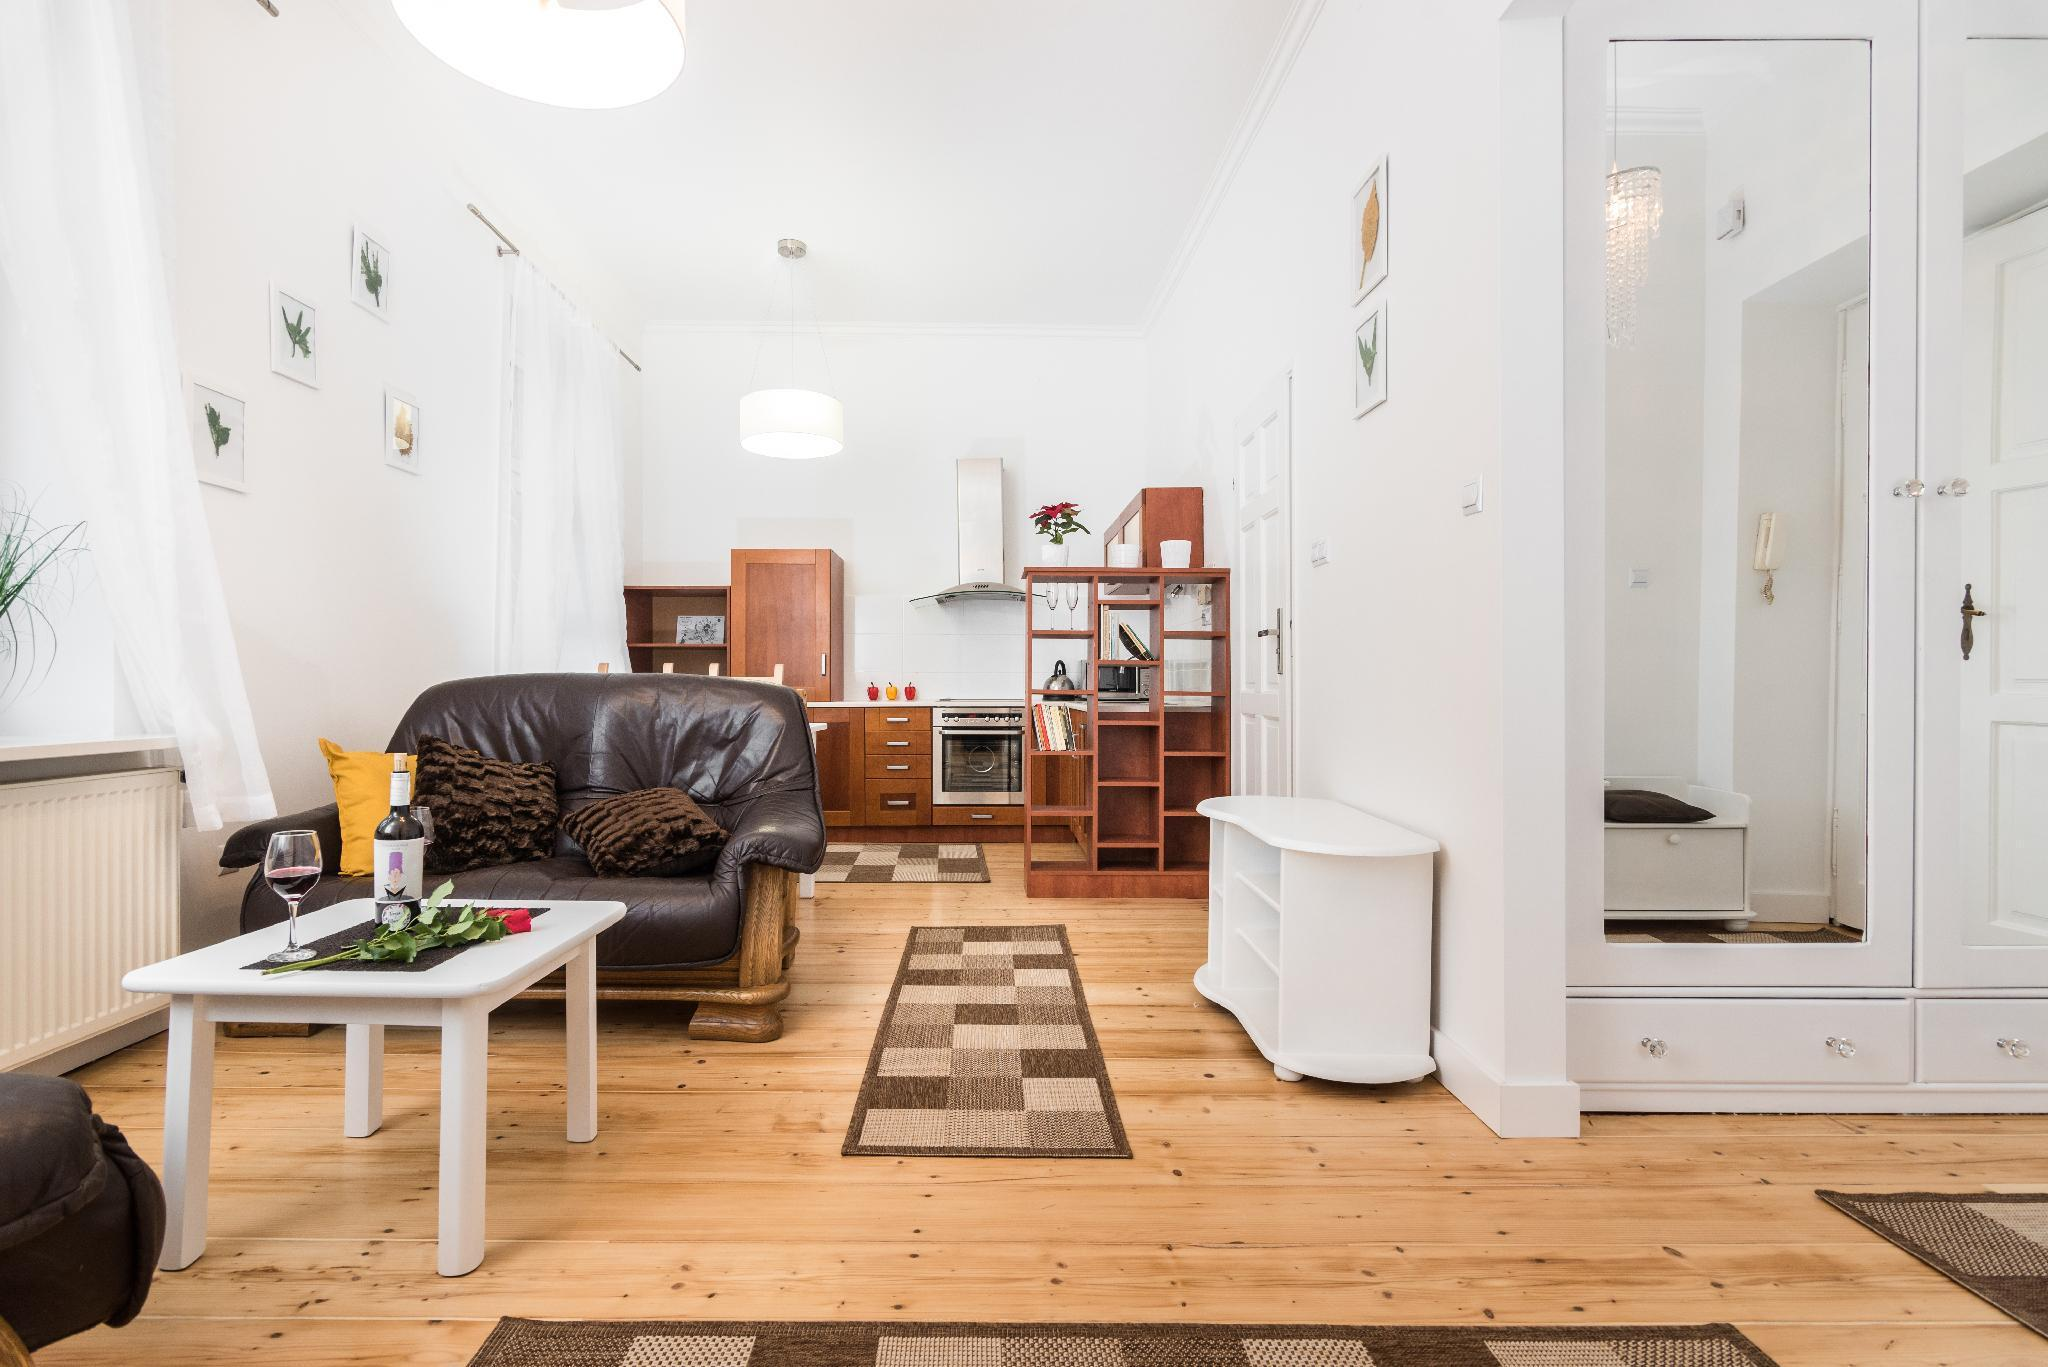 Luxurious One-Bedroom Ap. 5 min from Main Square